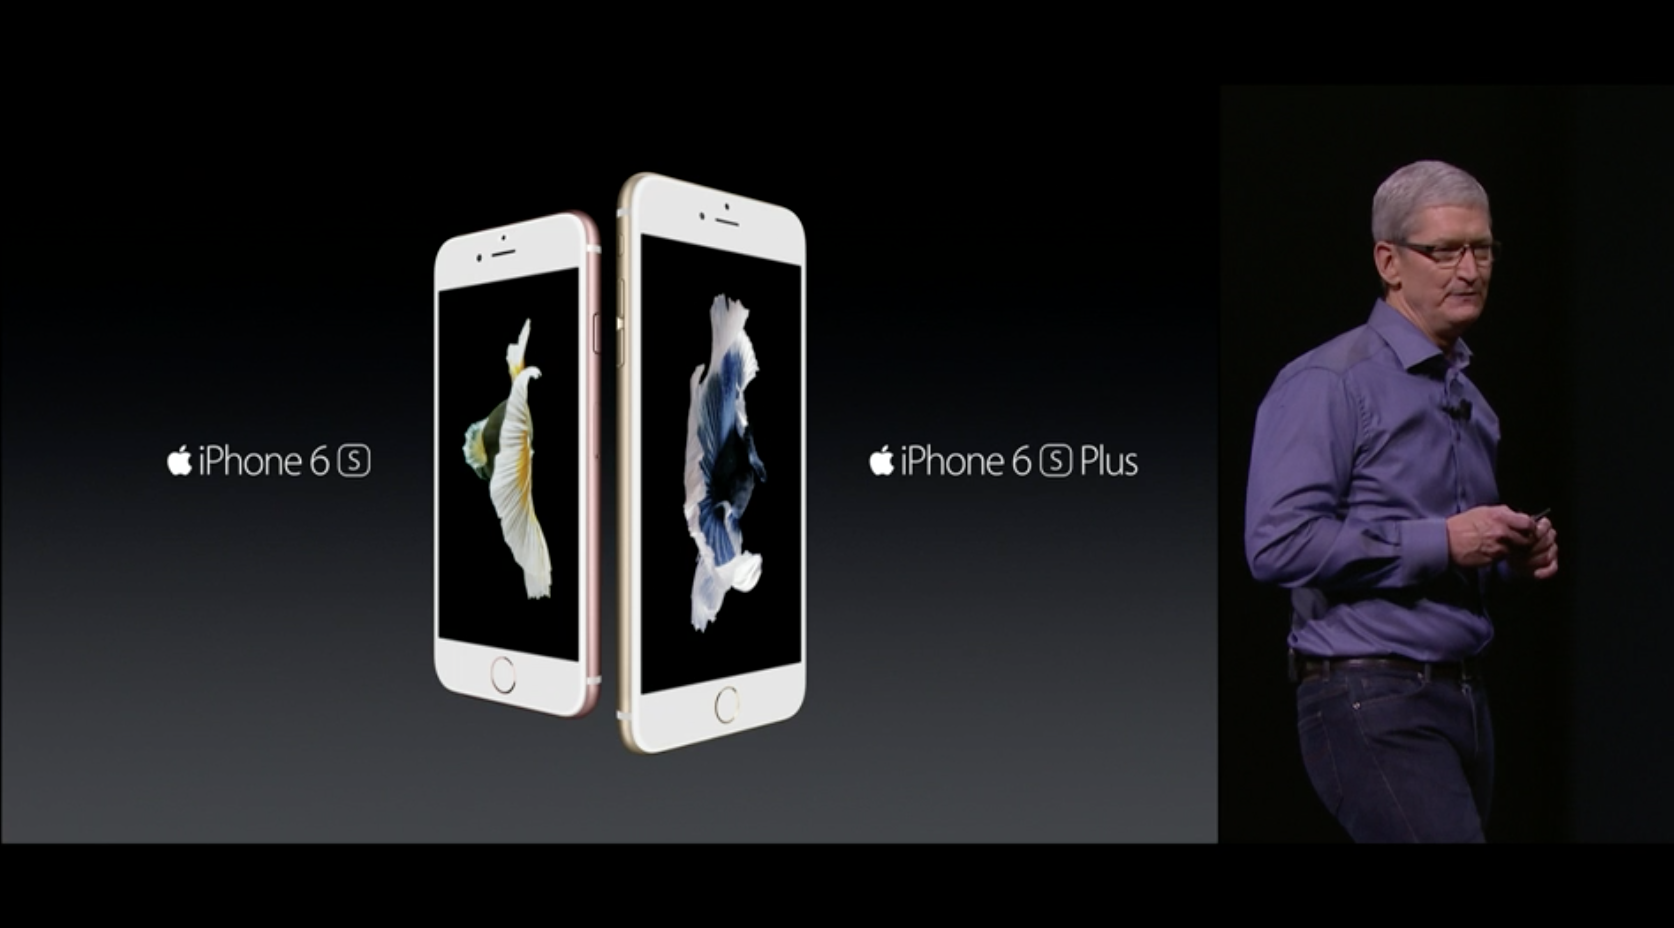 Apple officially unveils the iPhone 6s and iPhone 6s Plus